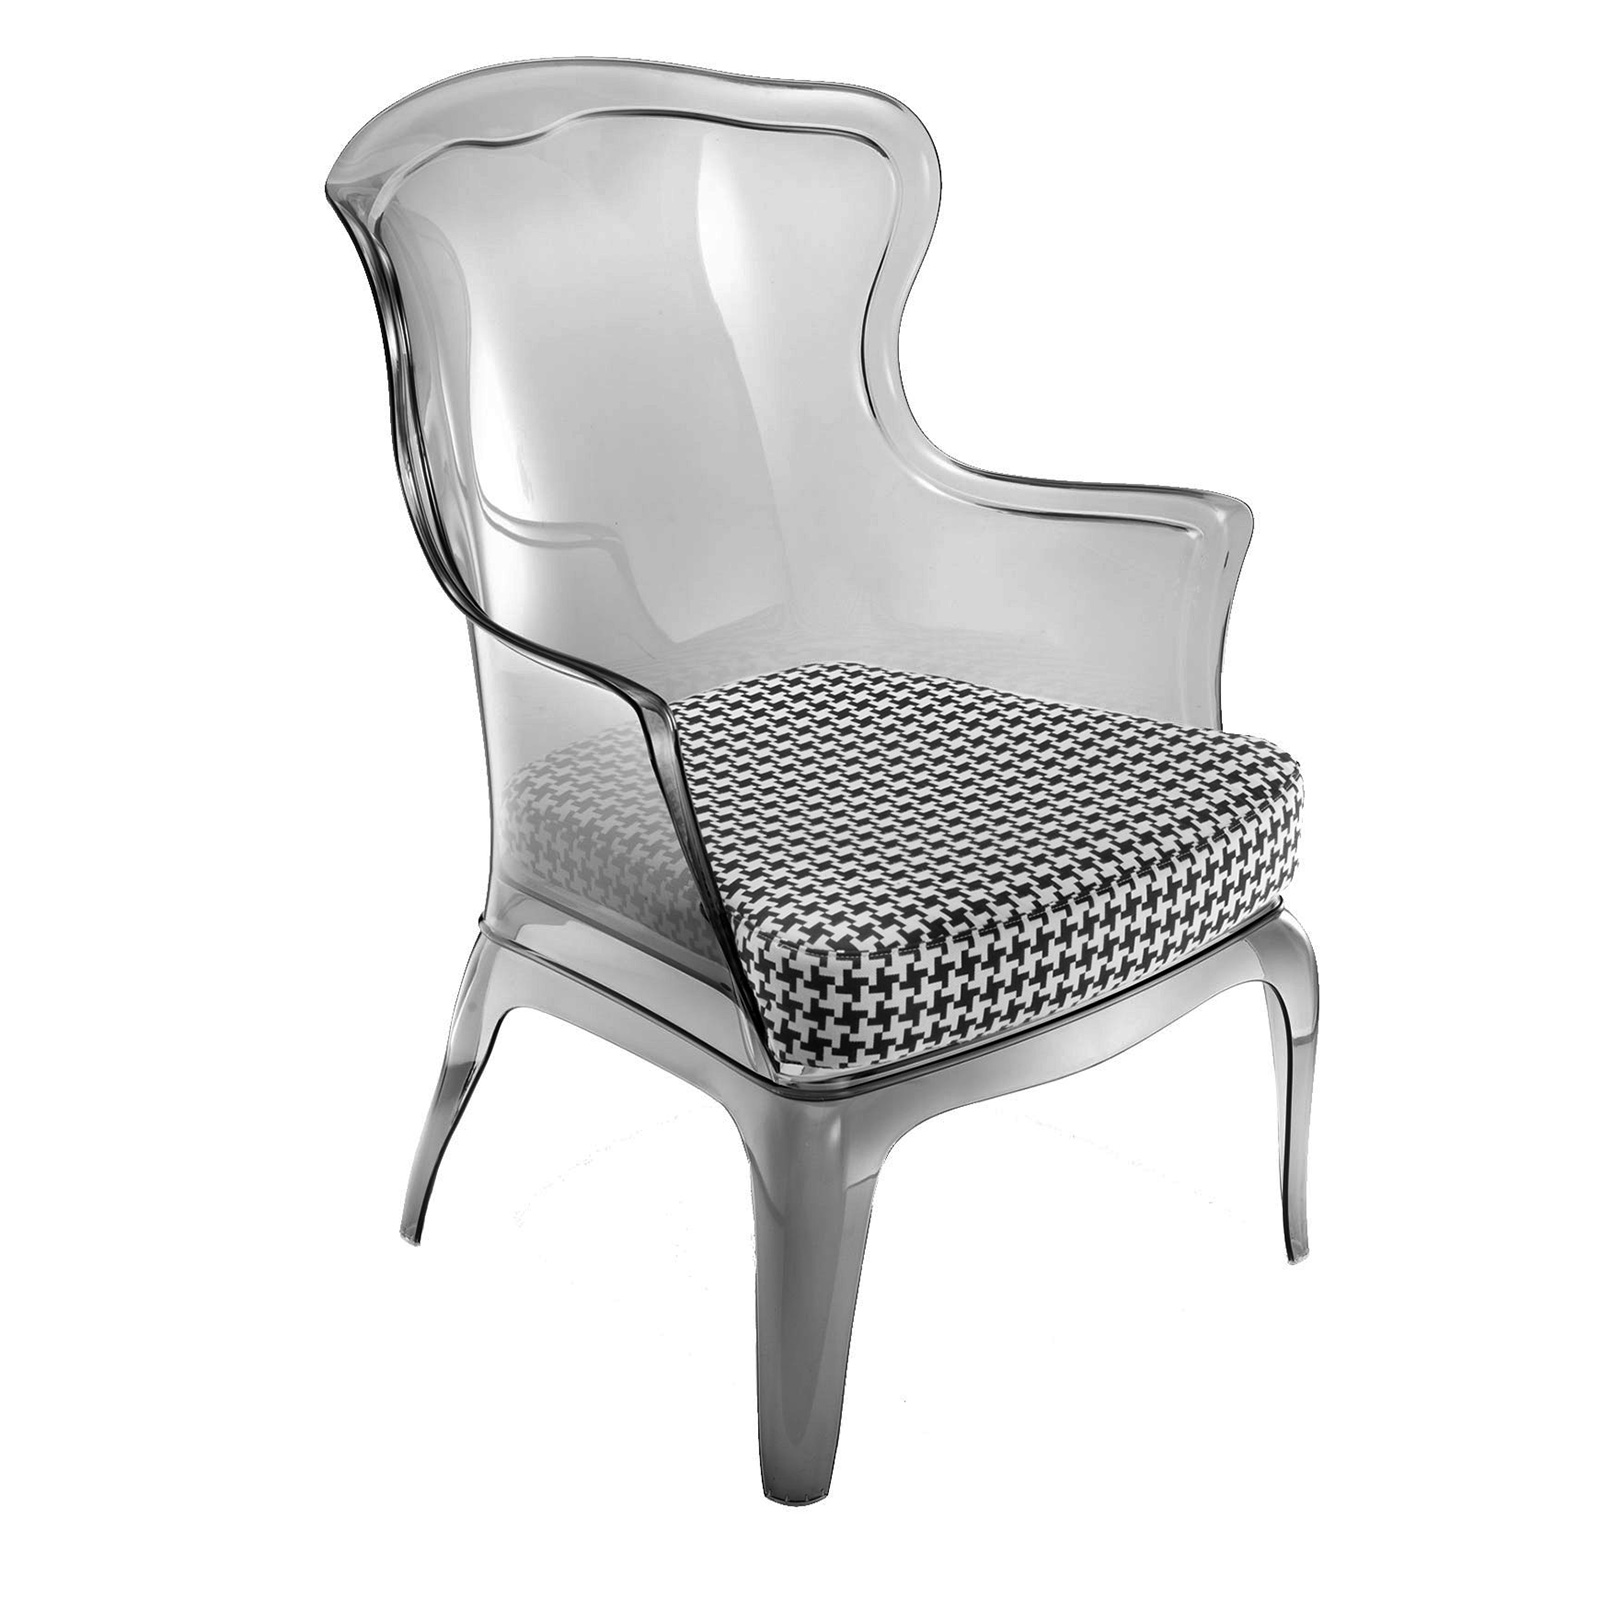 Florida Seating PASHA-SMOKE chair, armchair, outdoor